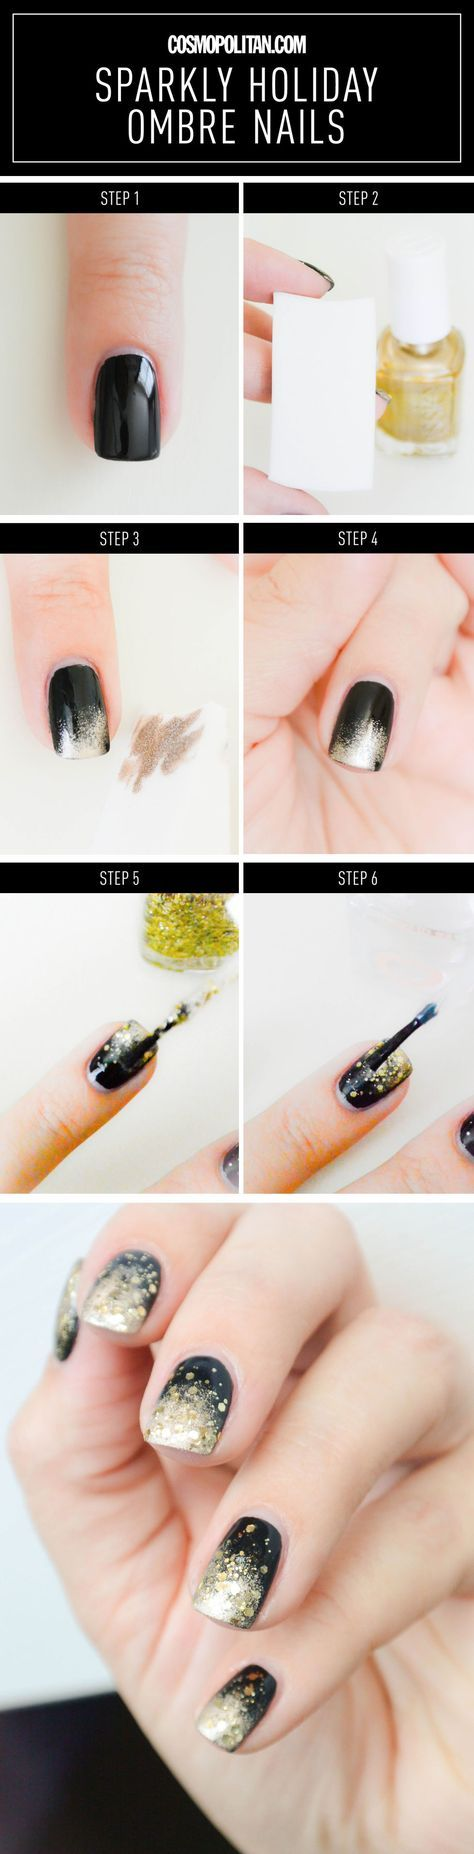 "Sparkly New Year's Eve Ombré Nails - Nail Tutorial   1. Basecoat, such as Essie Millionails 2. Black nail polish, such as Essie ""Licorice"" 3. Gold nail polish, such as Essie ""Good as Gold"" 4. Glitter polish, such as Essie's ""Rock at the Top"" 5. Makeup sponge 6. Topcoat, such as Essie Good to Go"